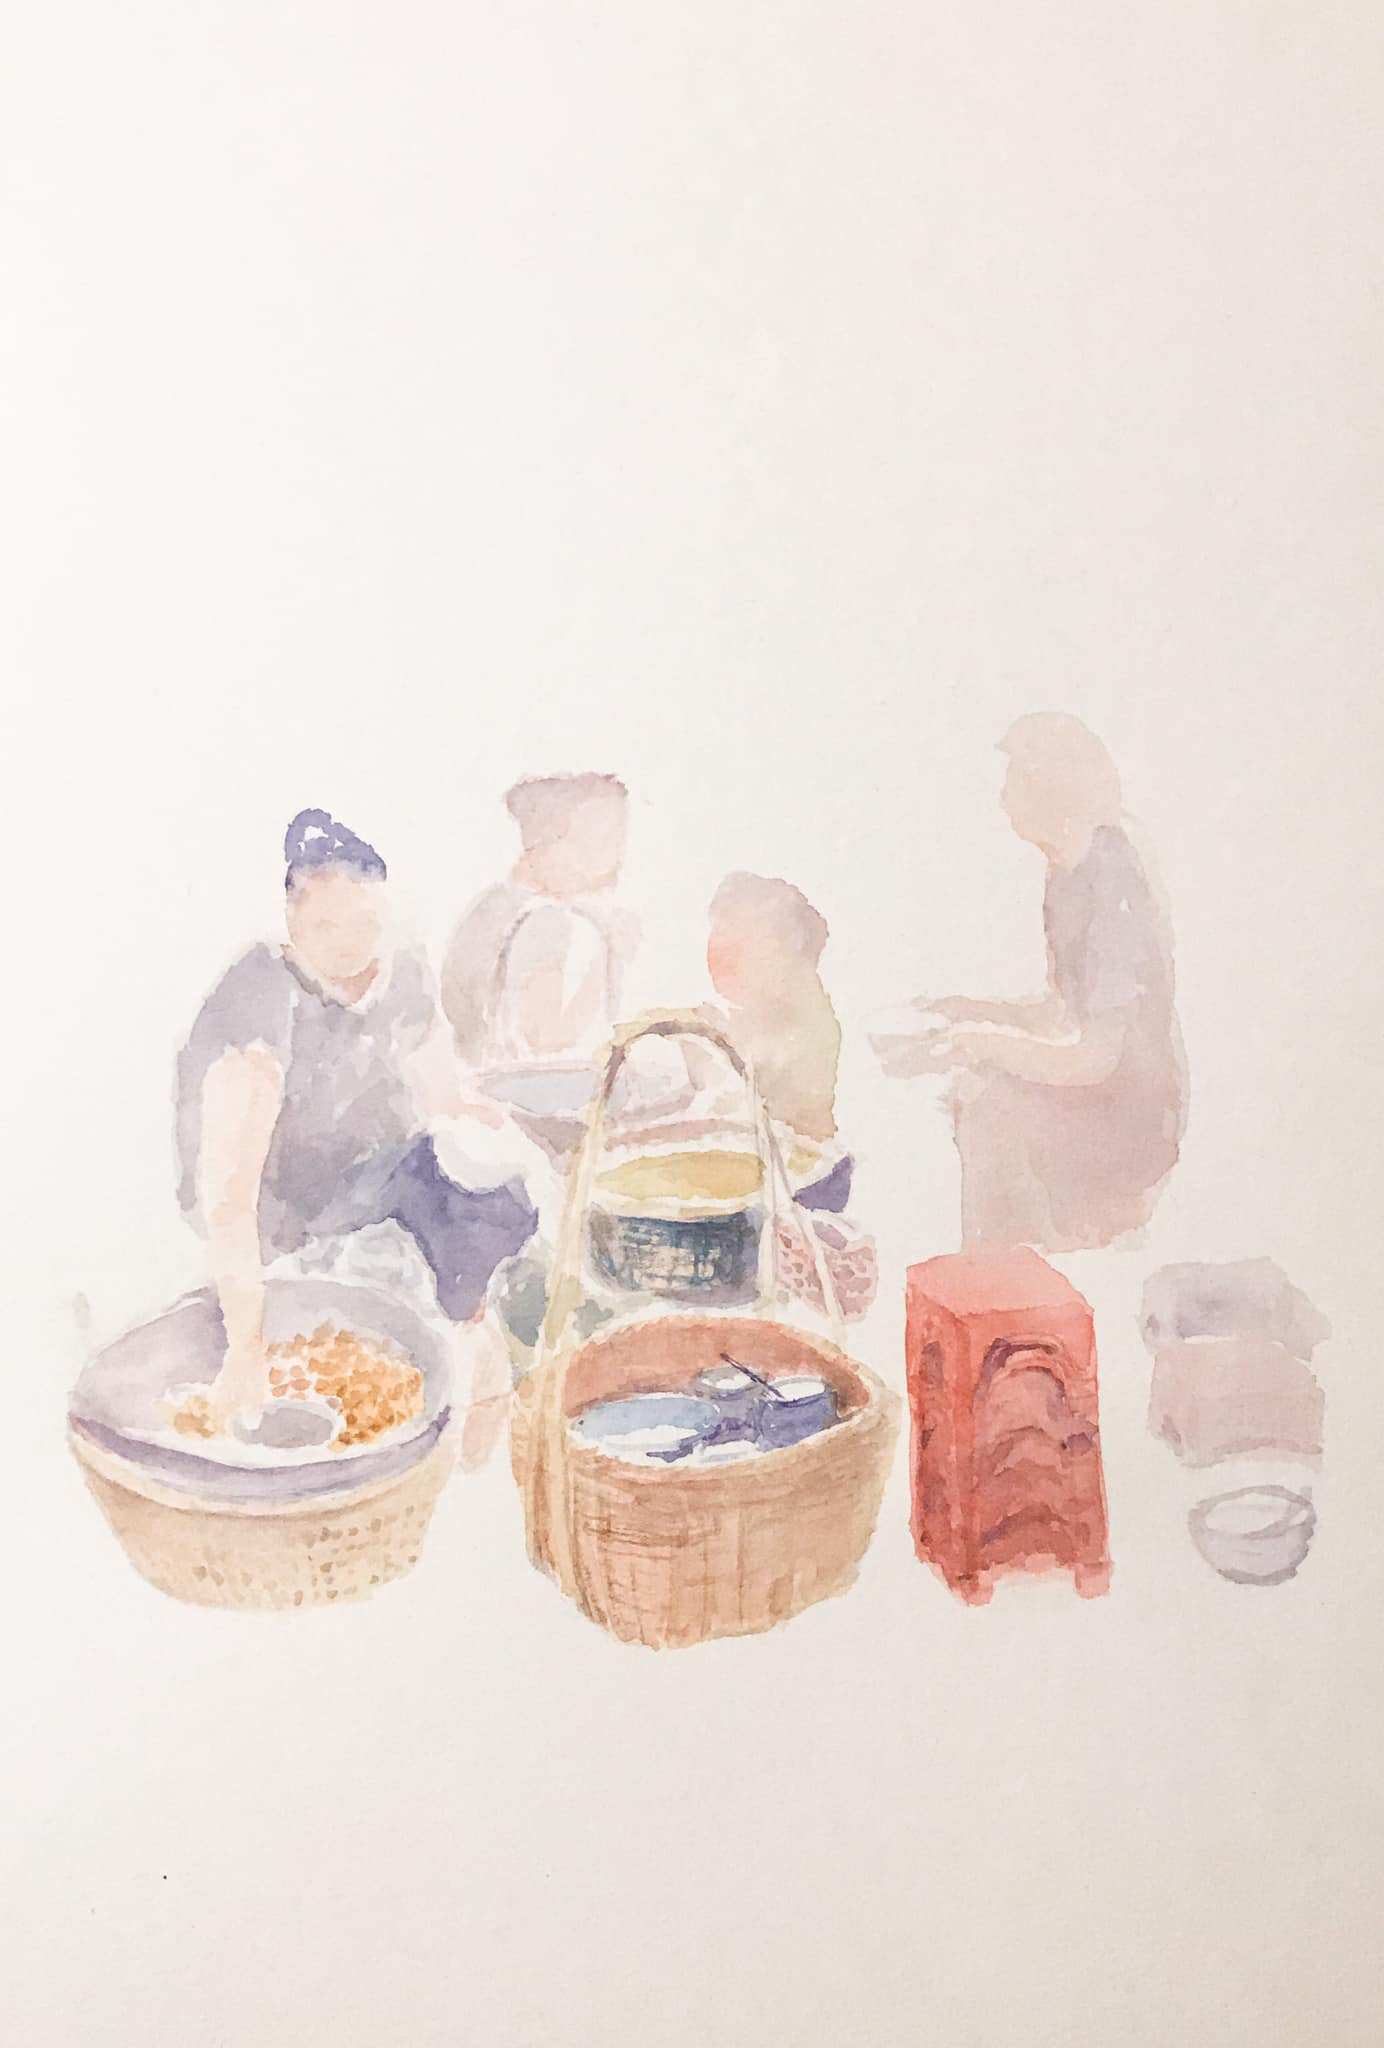 A porridge stand in Hanoi is seen in this sketch by Nam Phong.